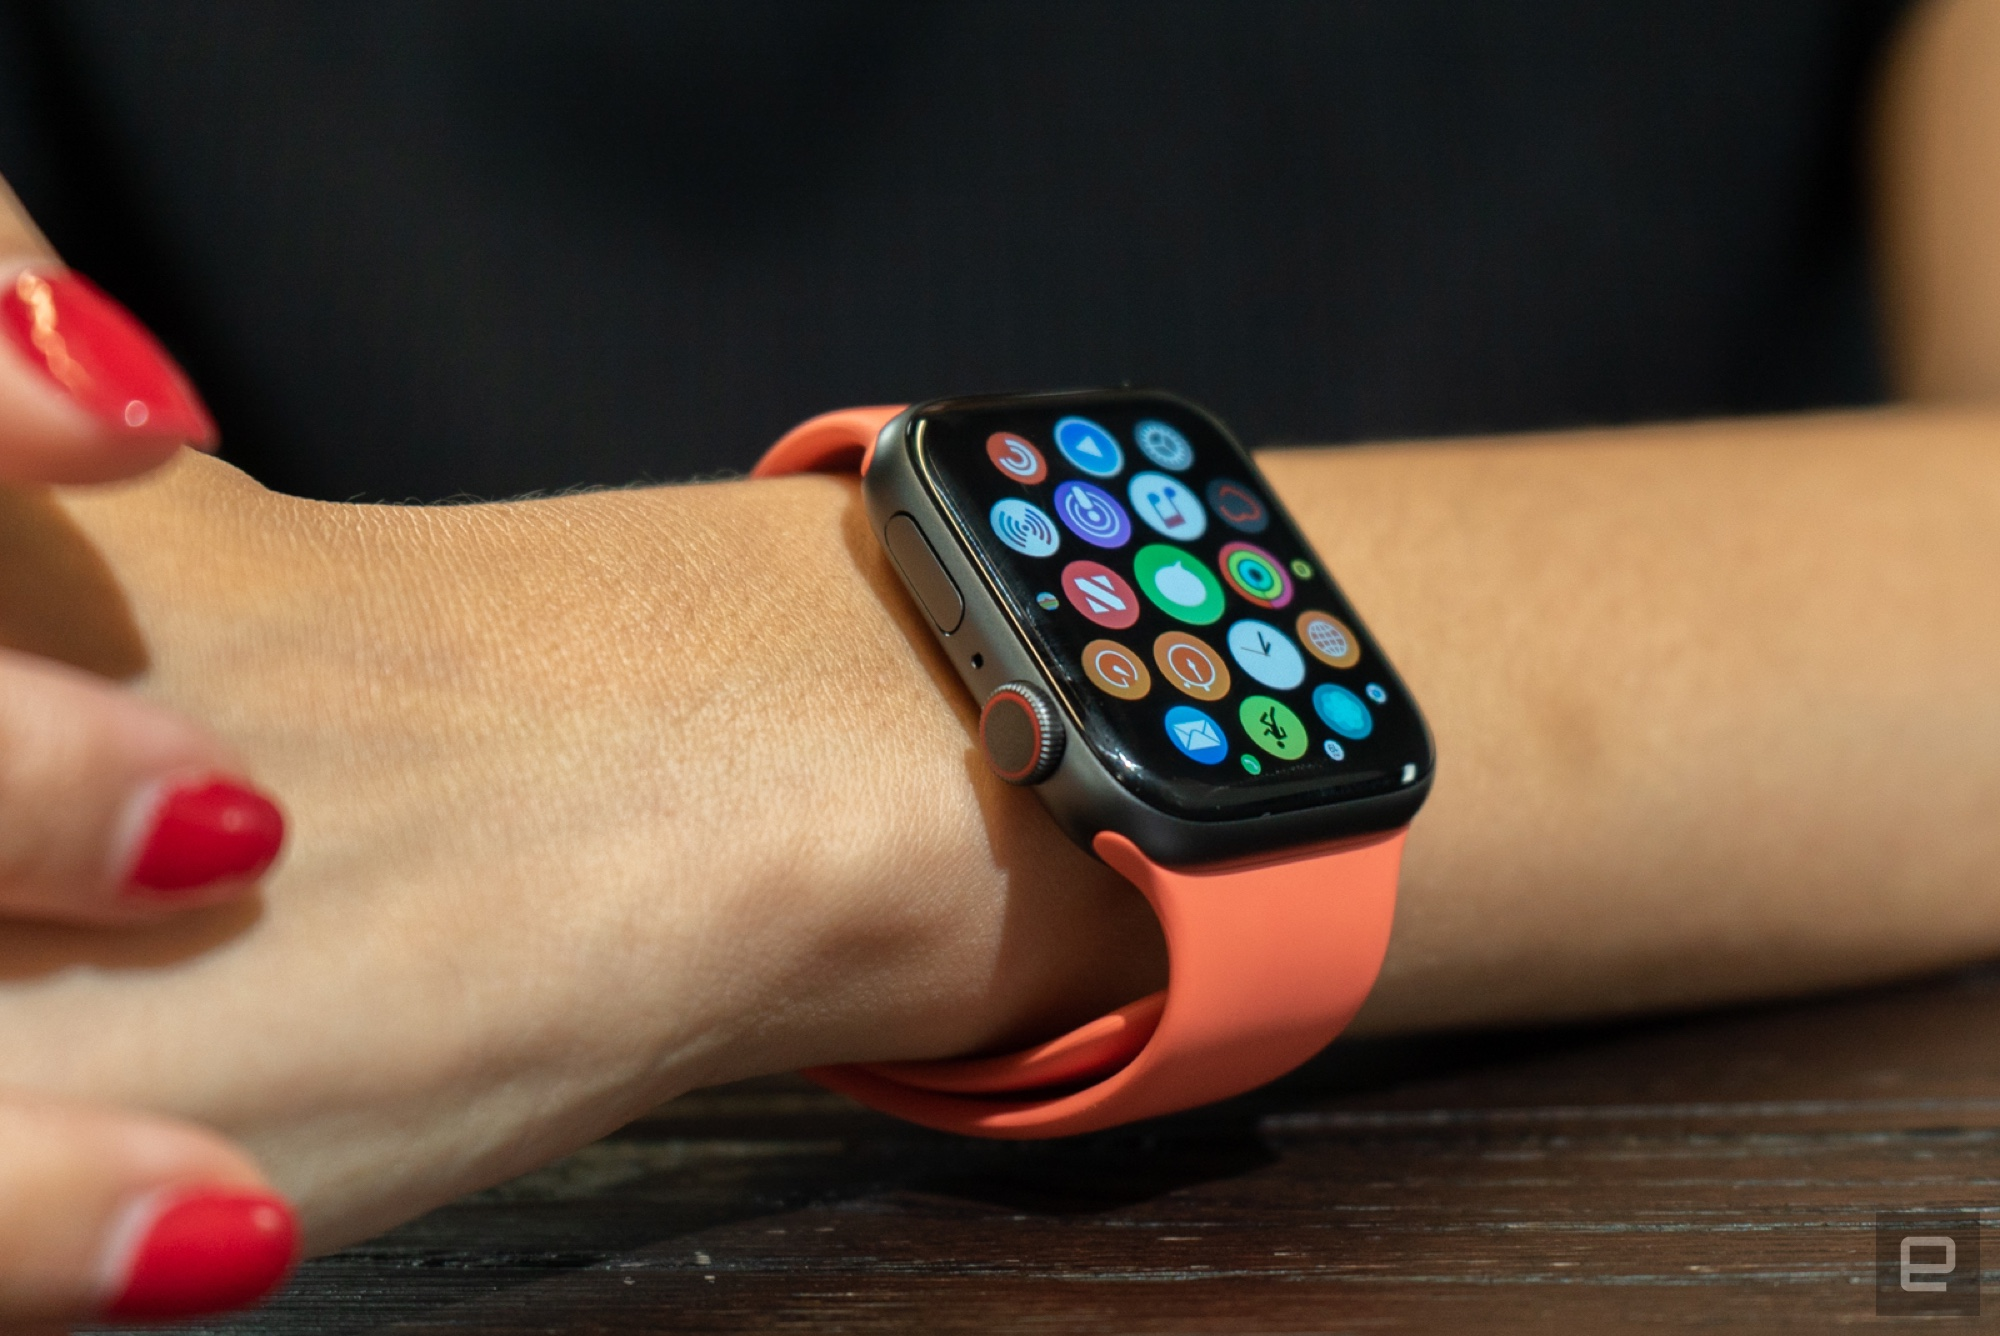 Apple's bigger, better Watch Series 4 makes a great first impression